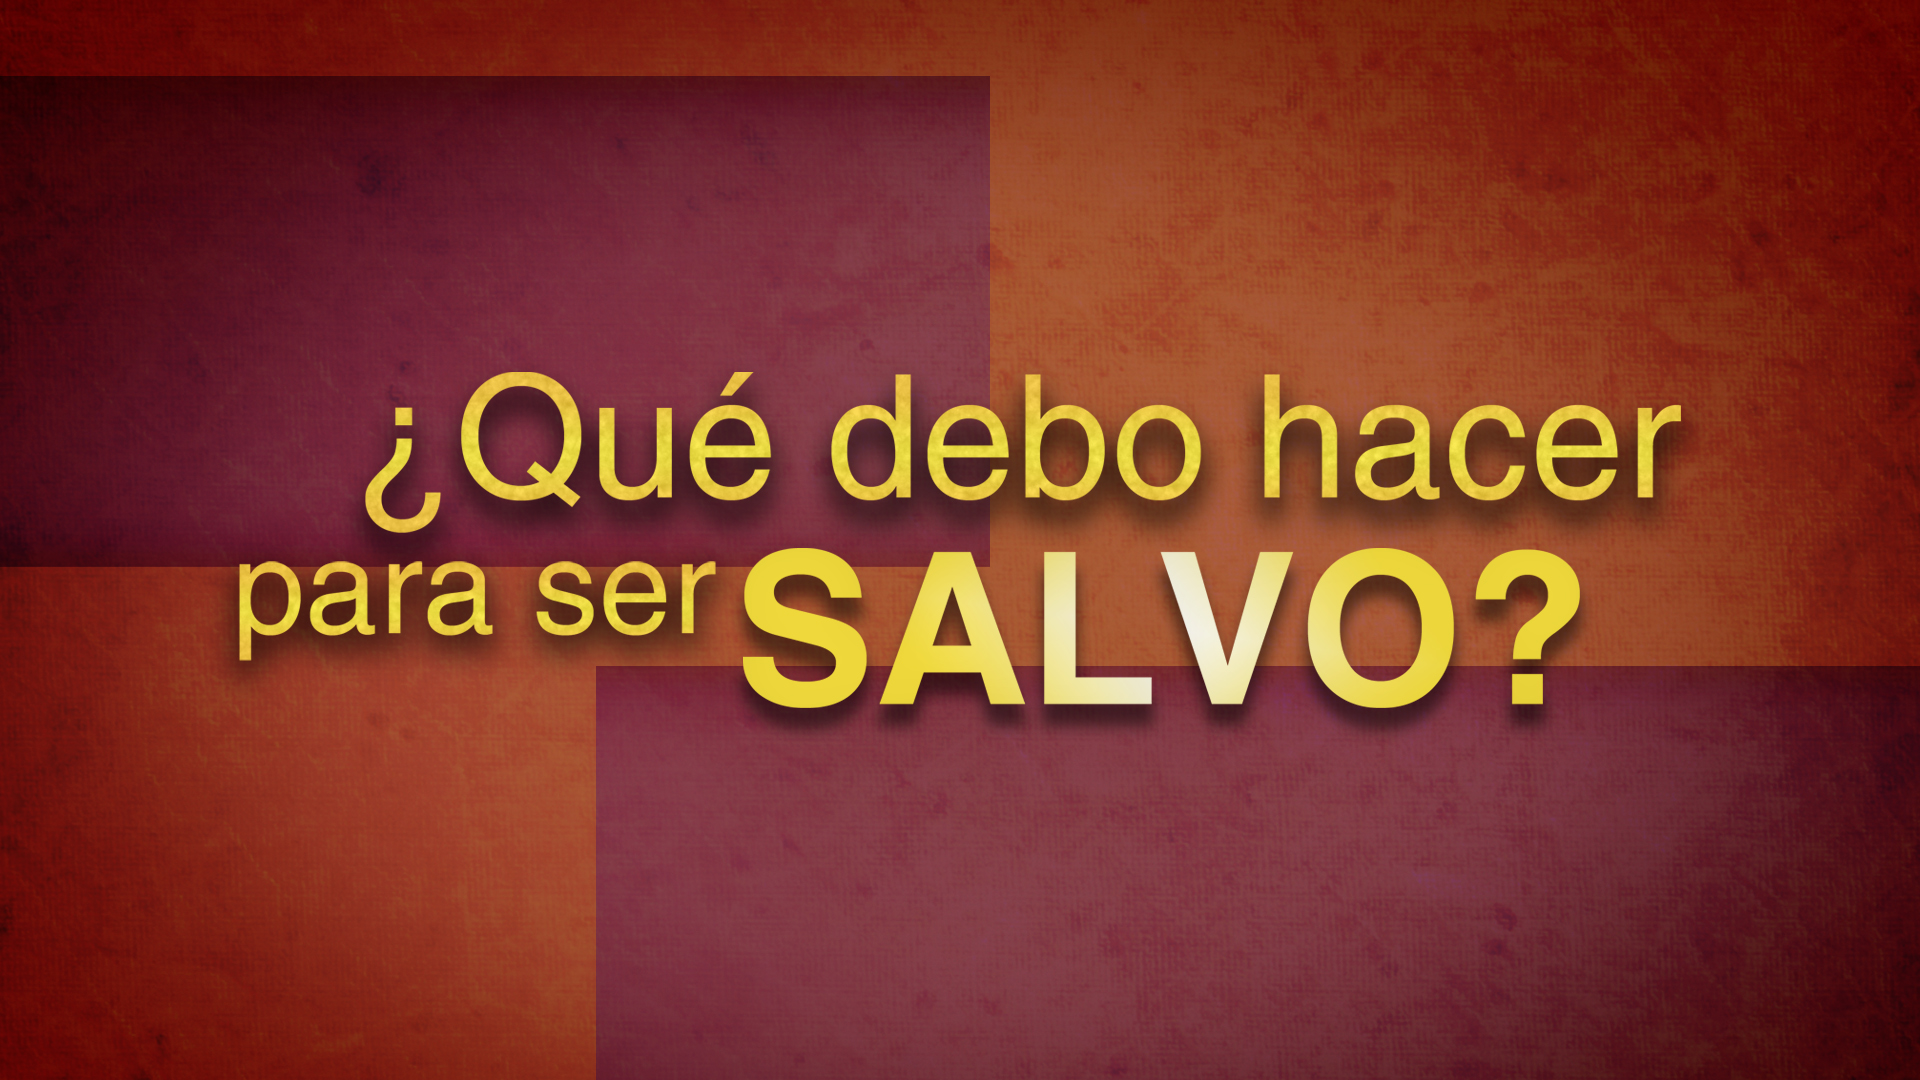 ¿Qué Debo Hacer Para Ser Salvo? (What Must I Do to Be Saved?) - Spanish Version